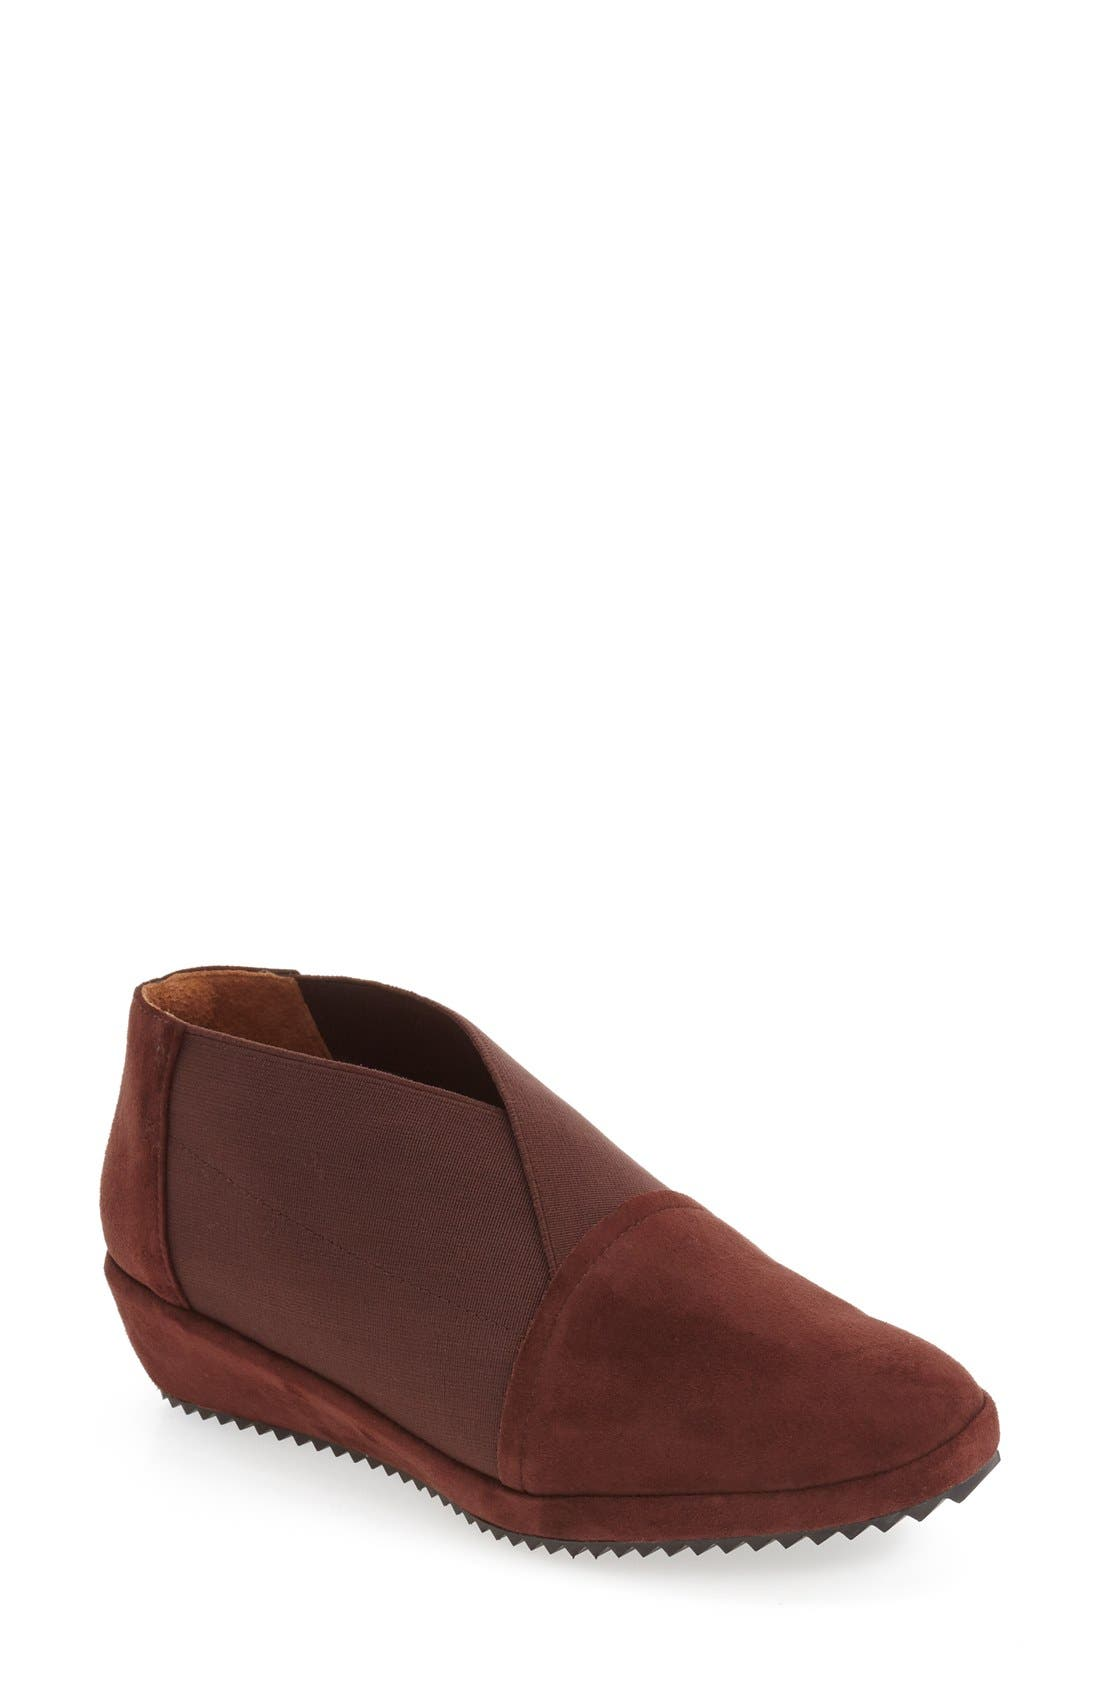 Main Image - L'Amour des Pieds 'Bowden' Slip-On Wedge (Women)